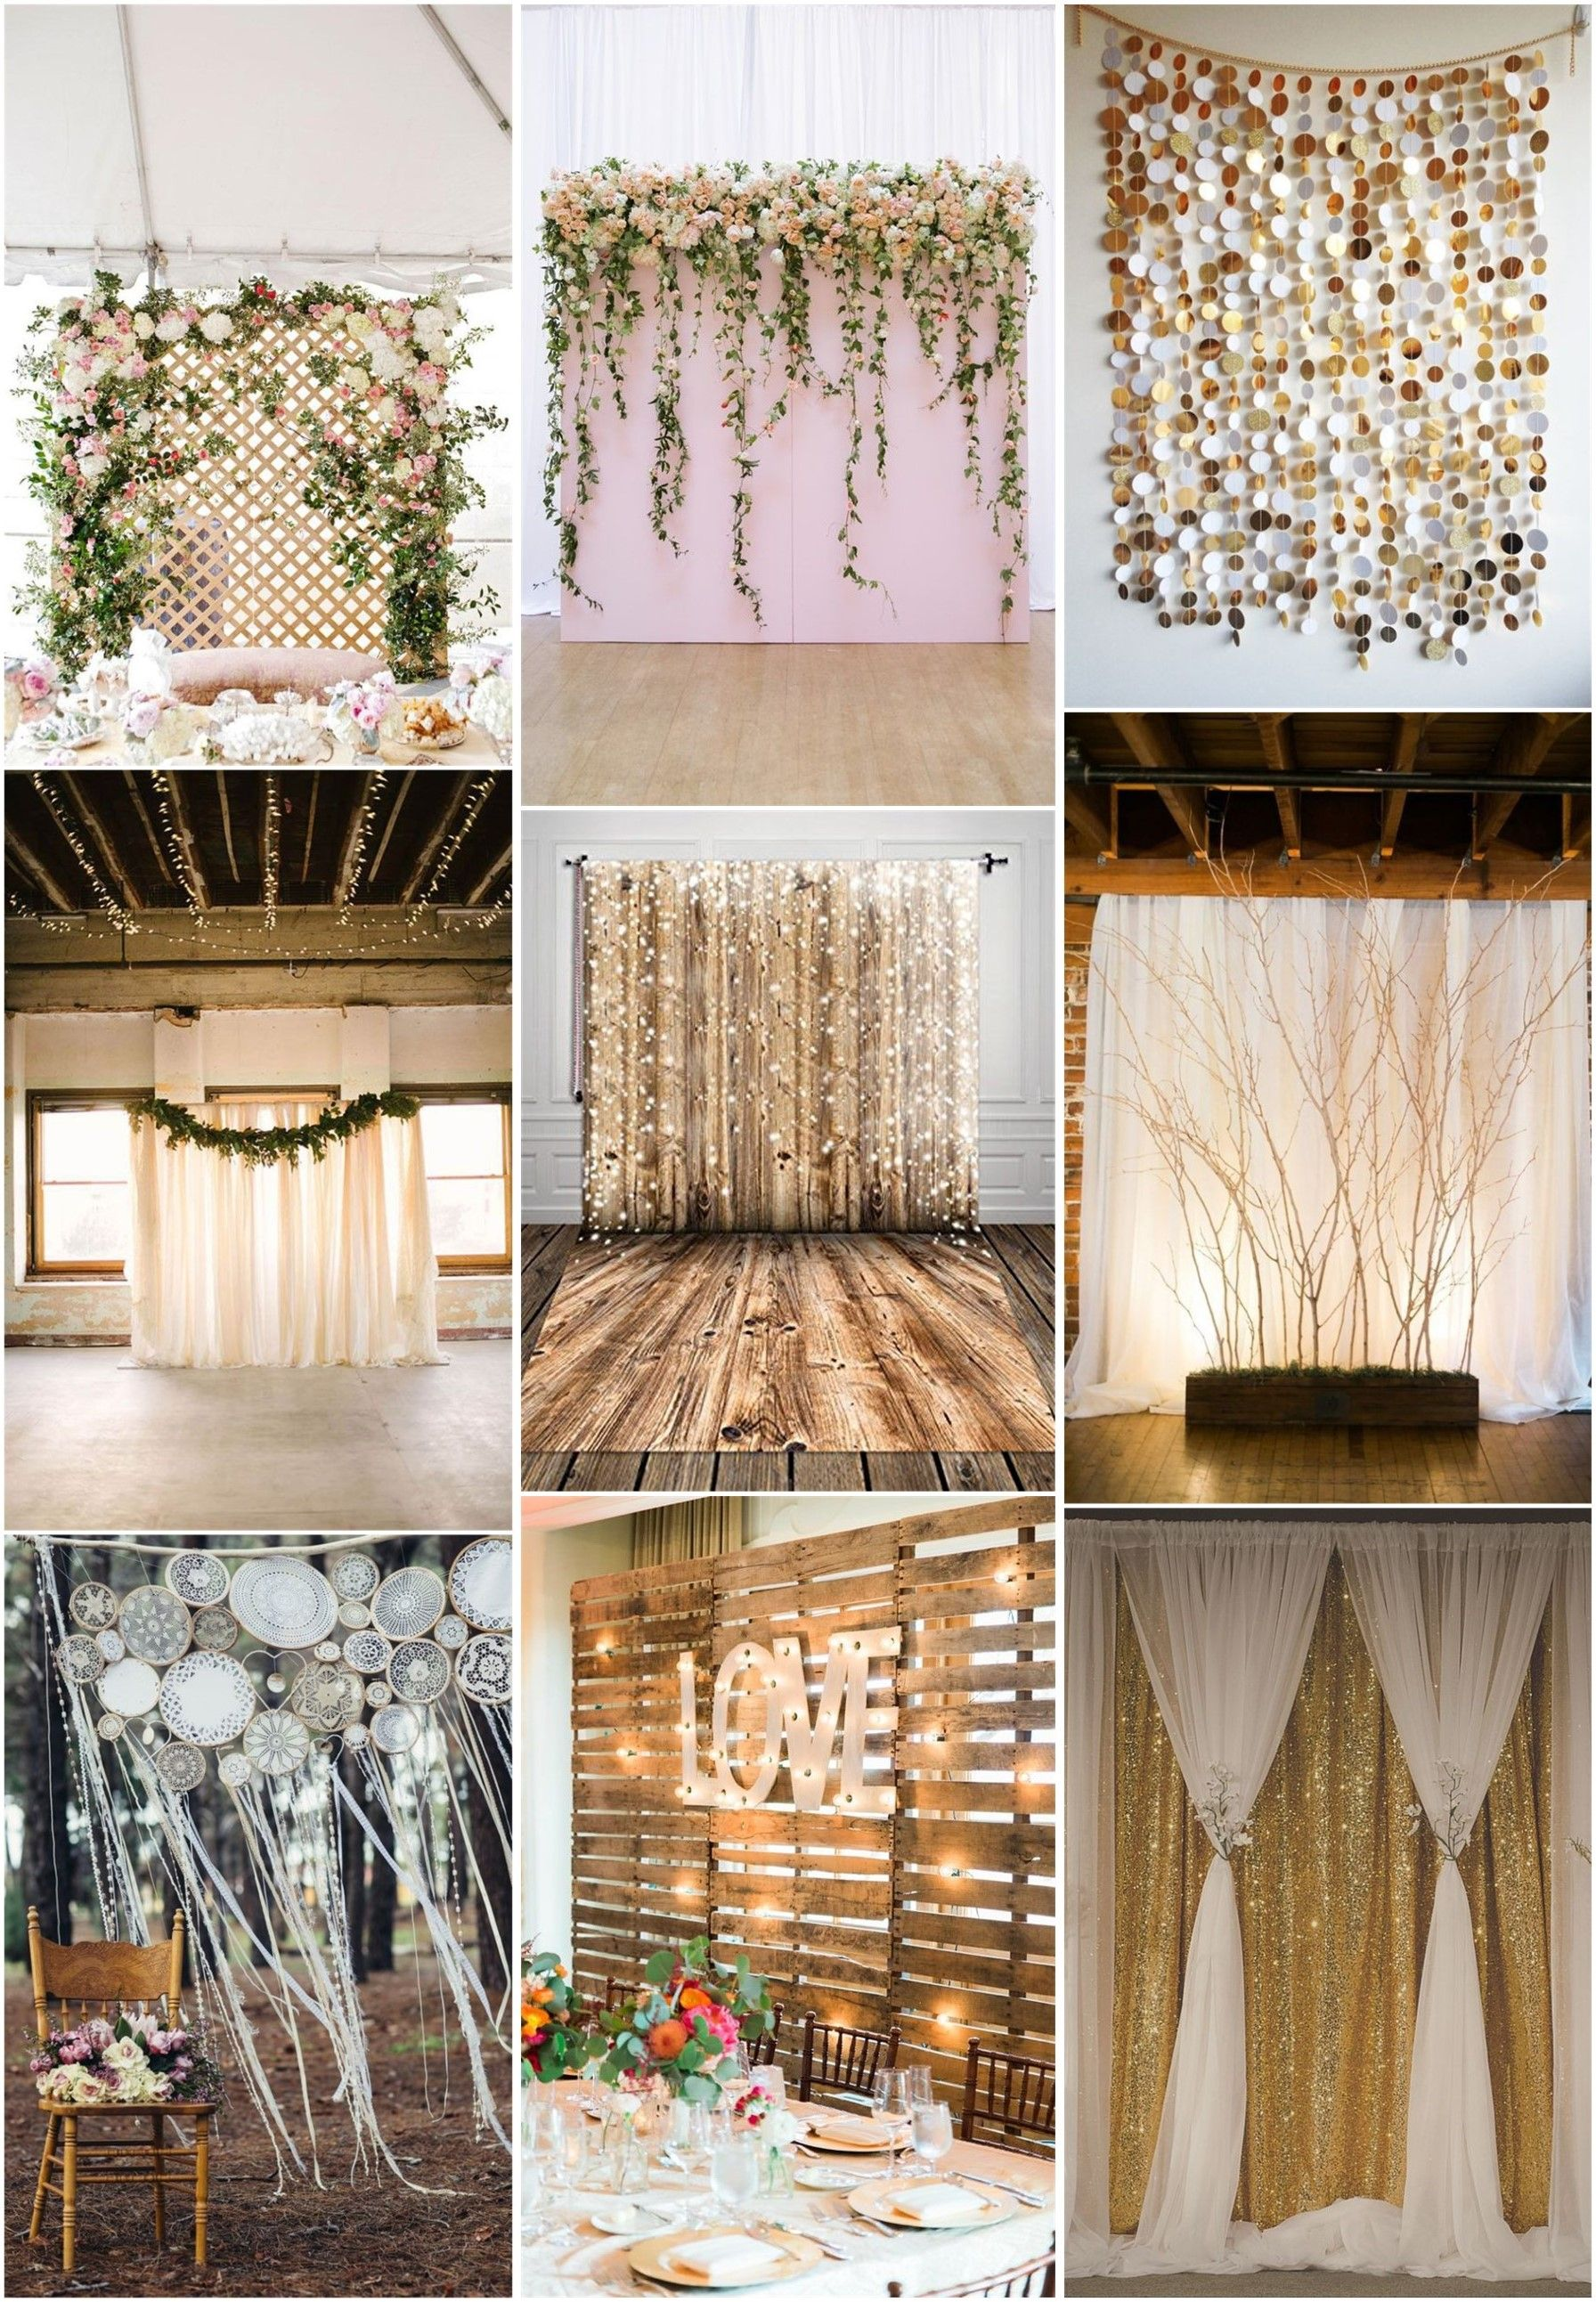 30 Unique And Breathtaking Wedding Backdrop Ideas Weddinginclude Wedding Backdrop Breathtaking Wedding Backdrops